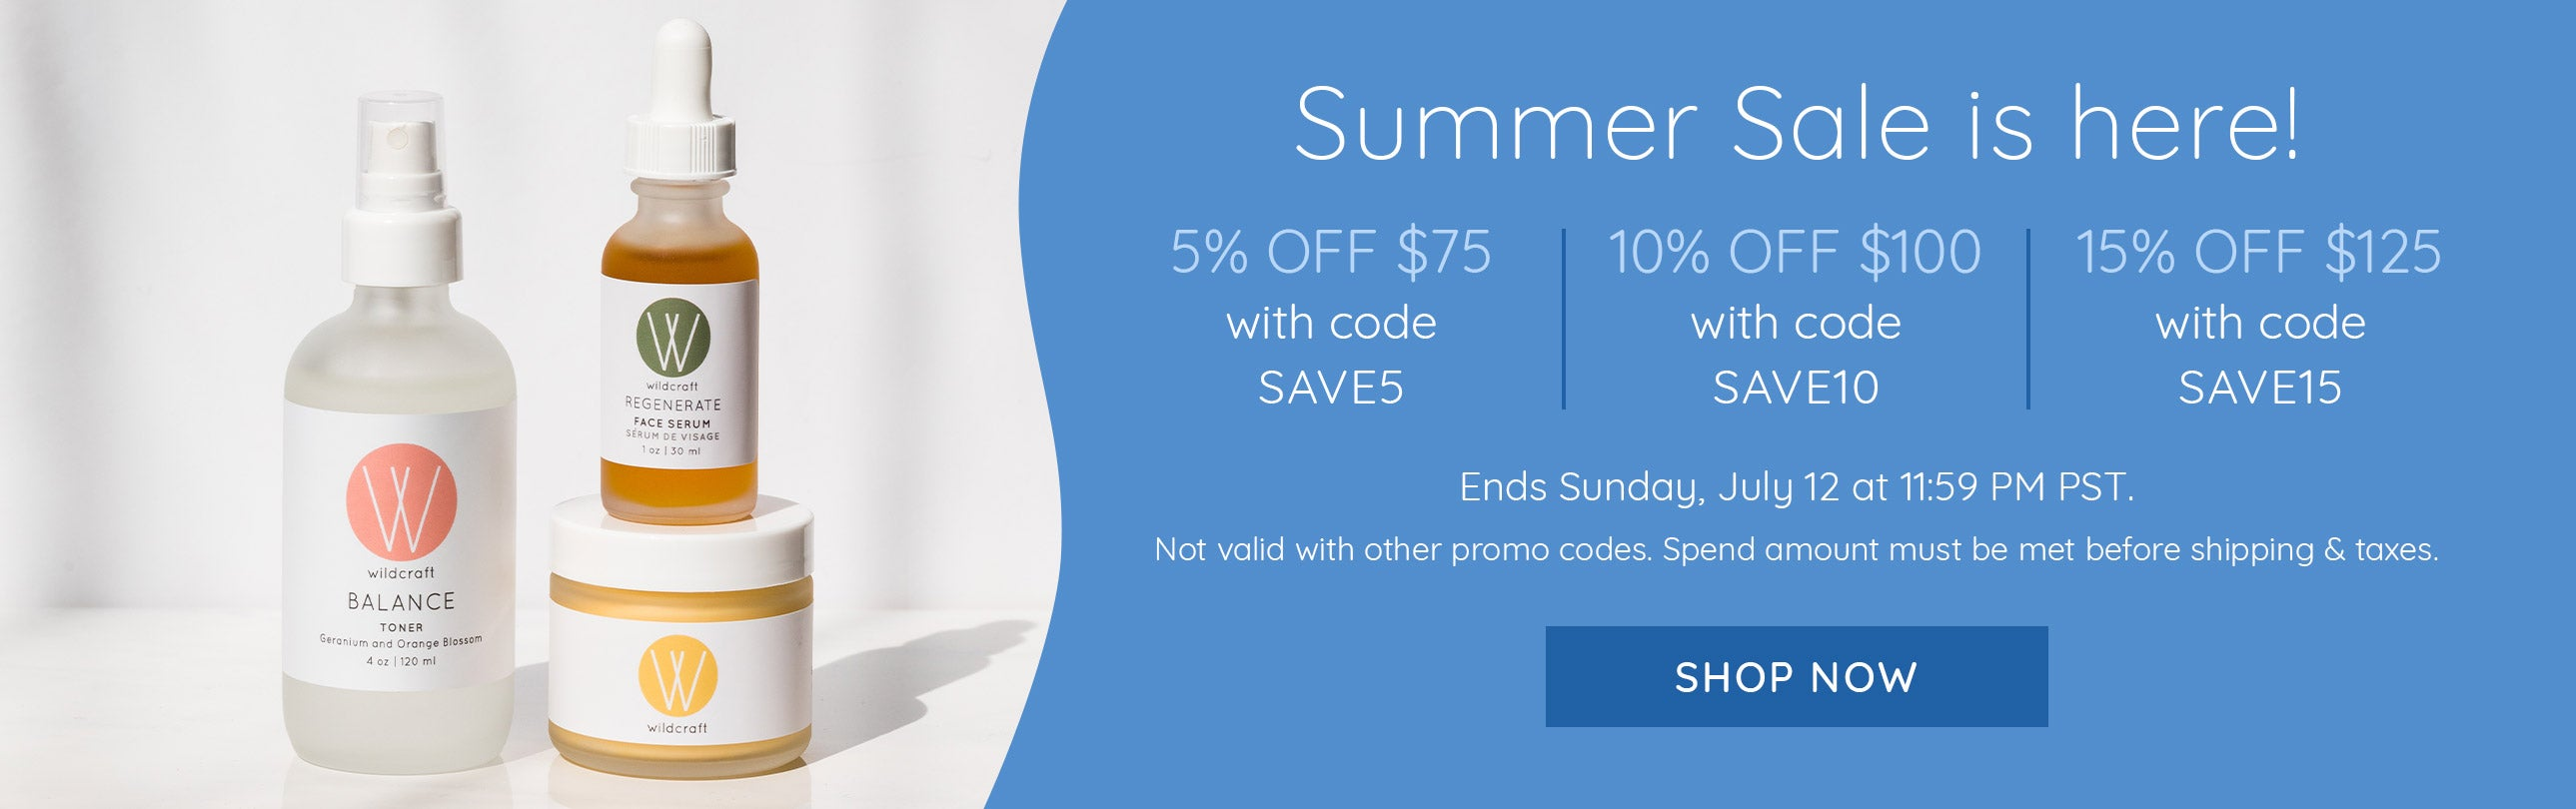 Save up to 15% off with our Summer Sale!